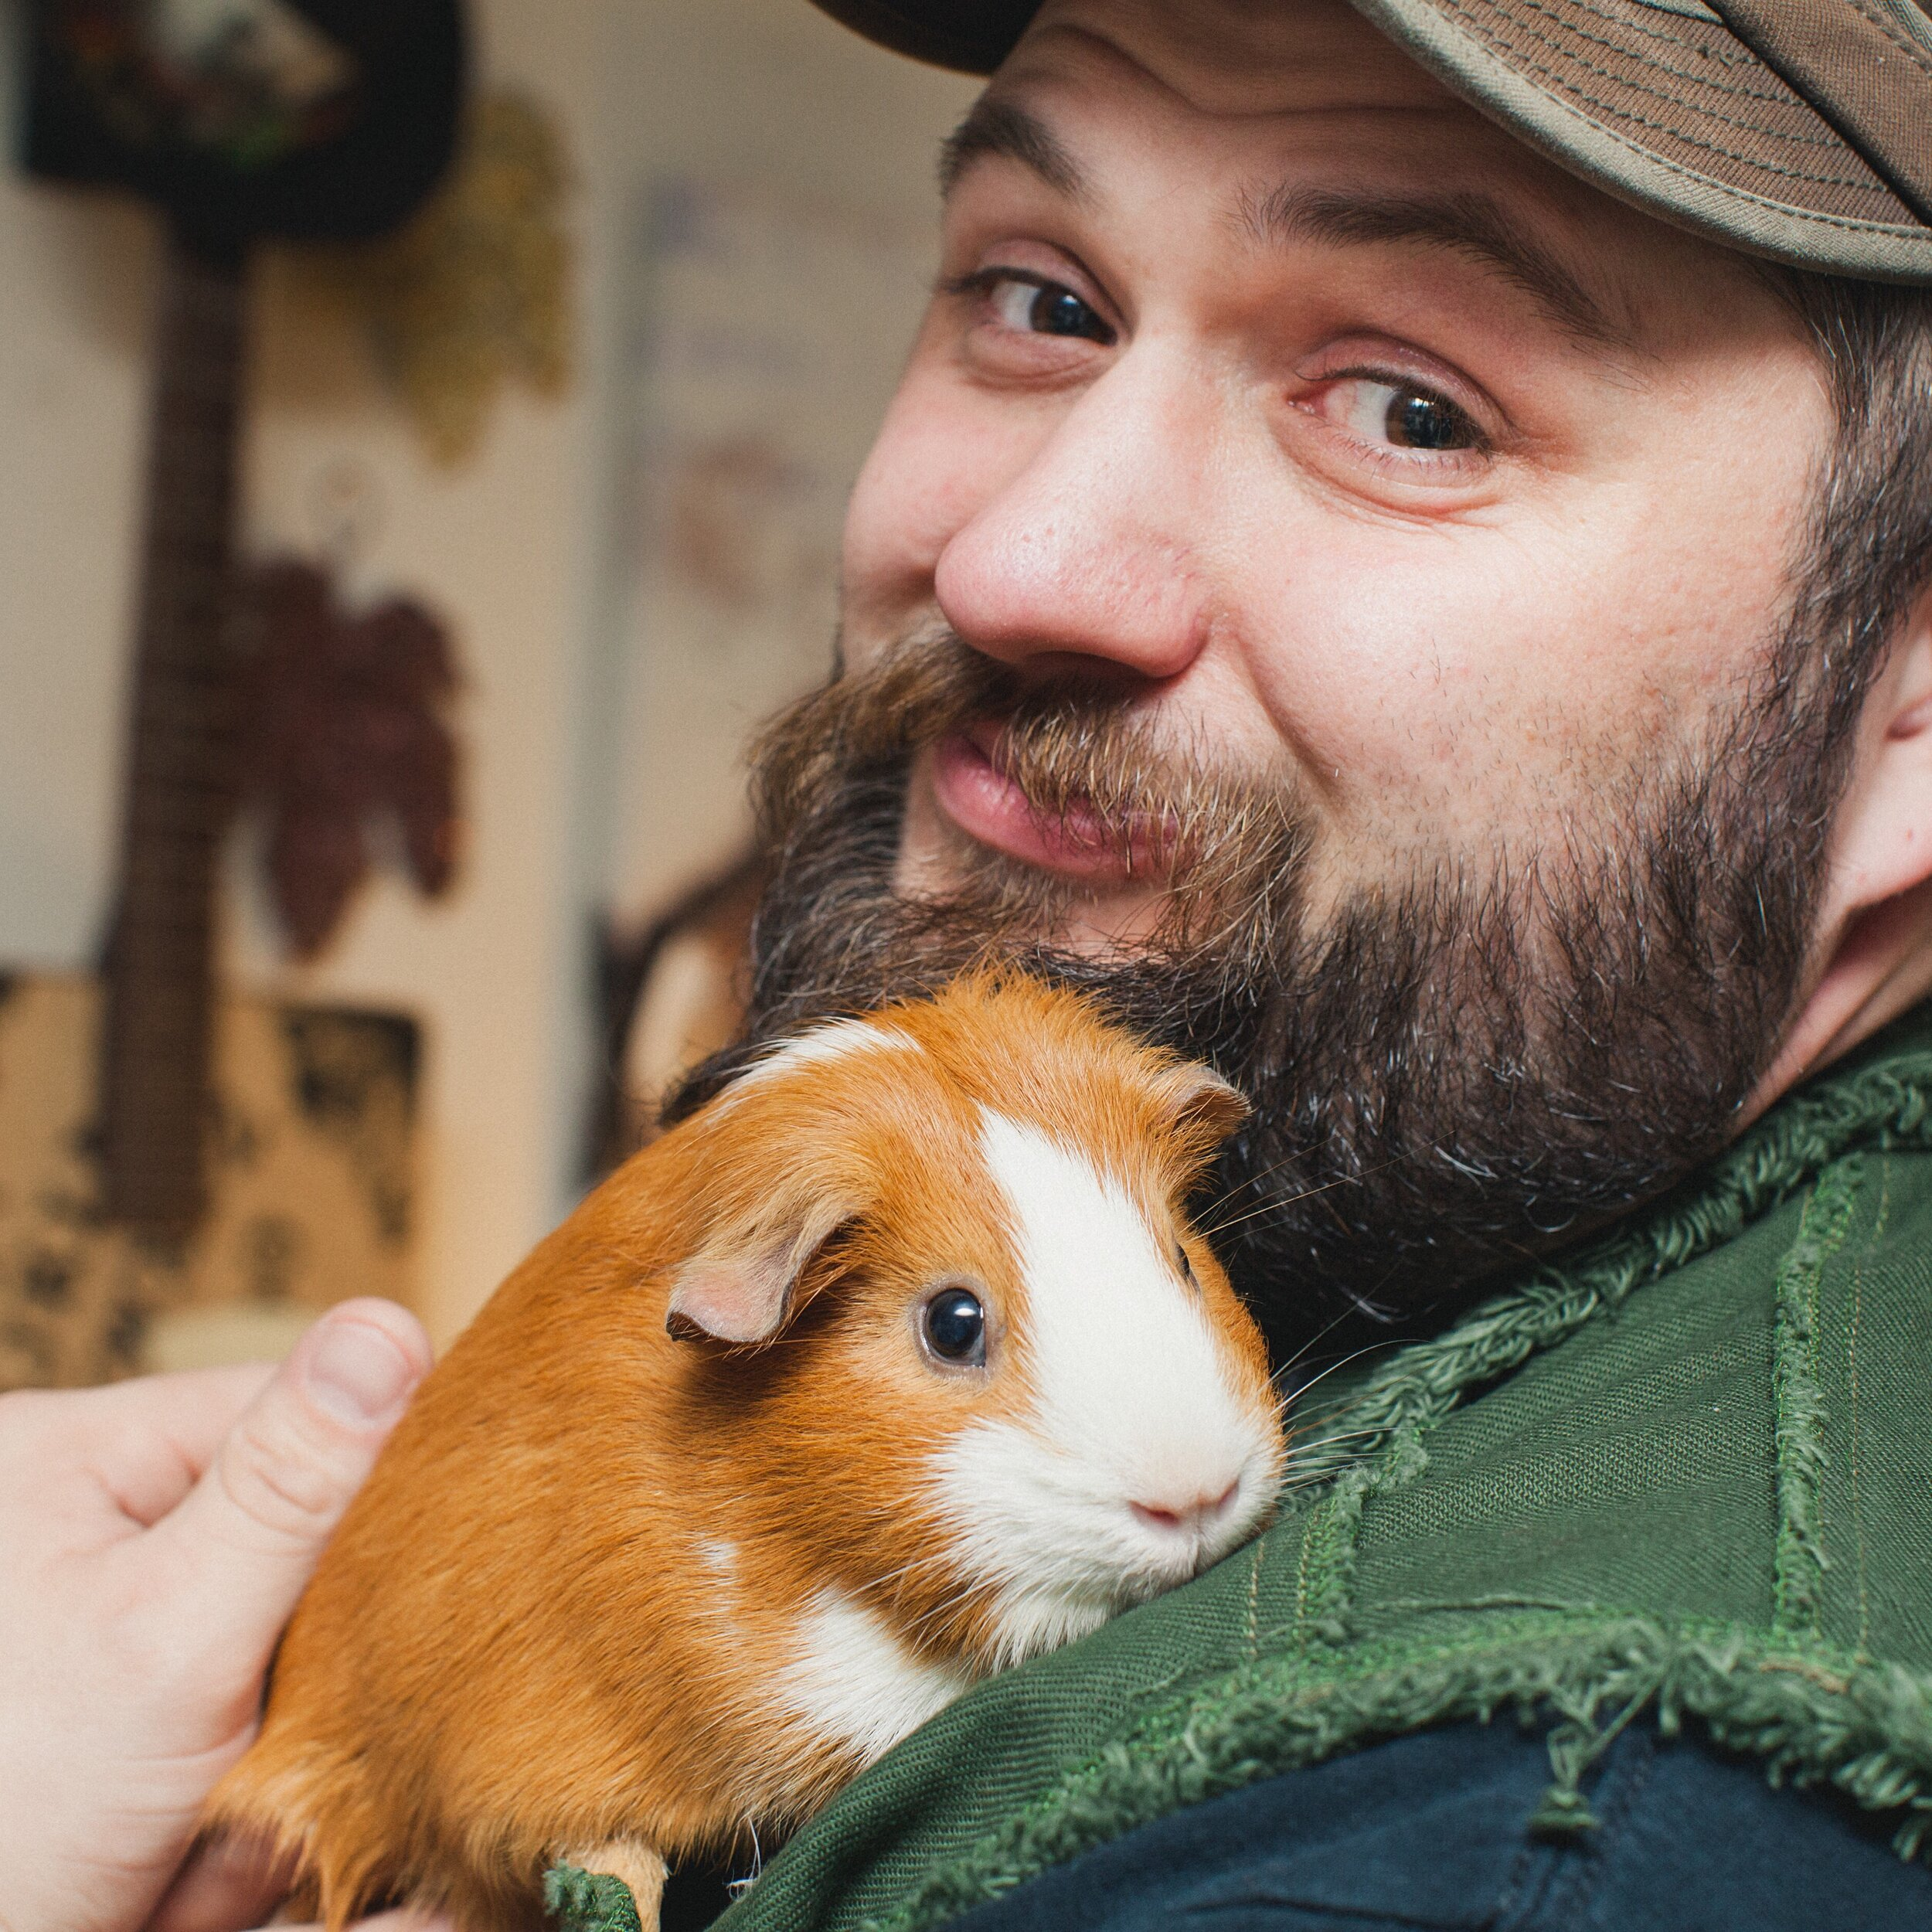 Jimmy with a Guinea Pig